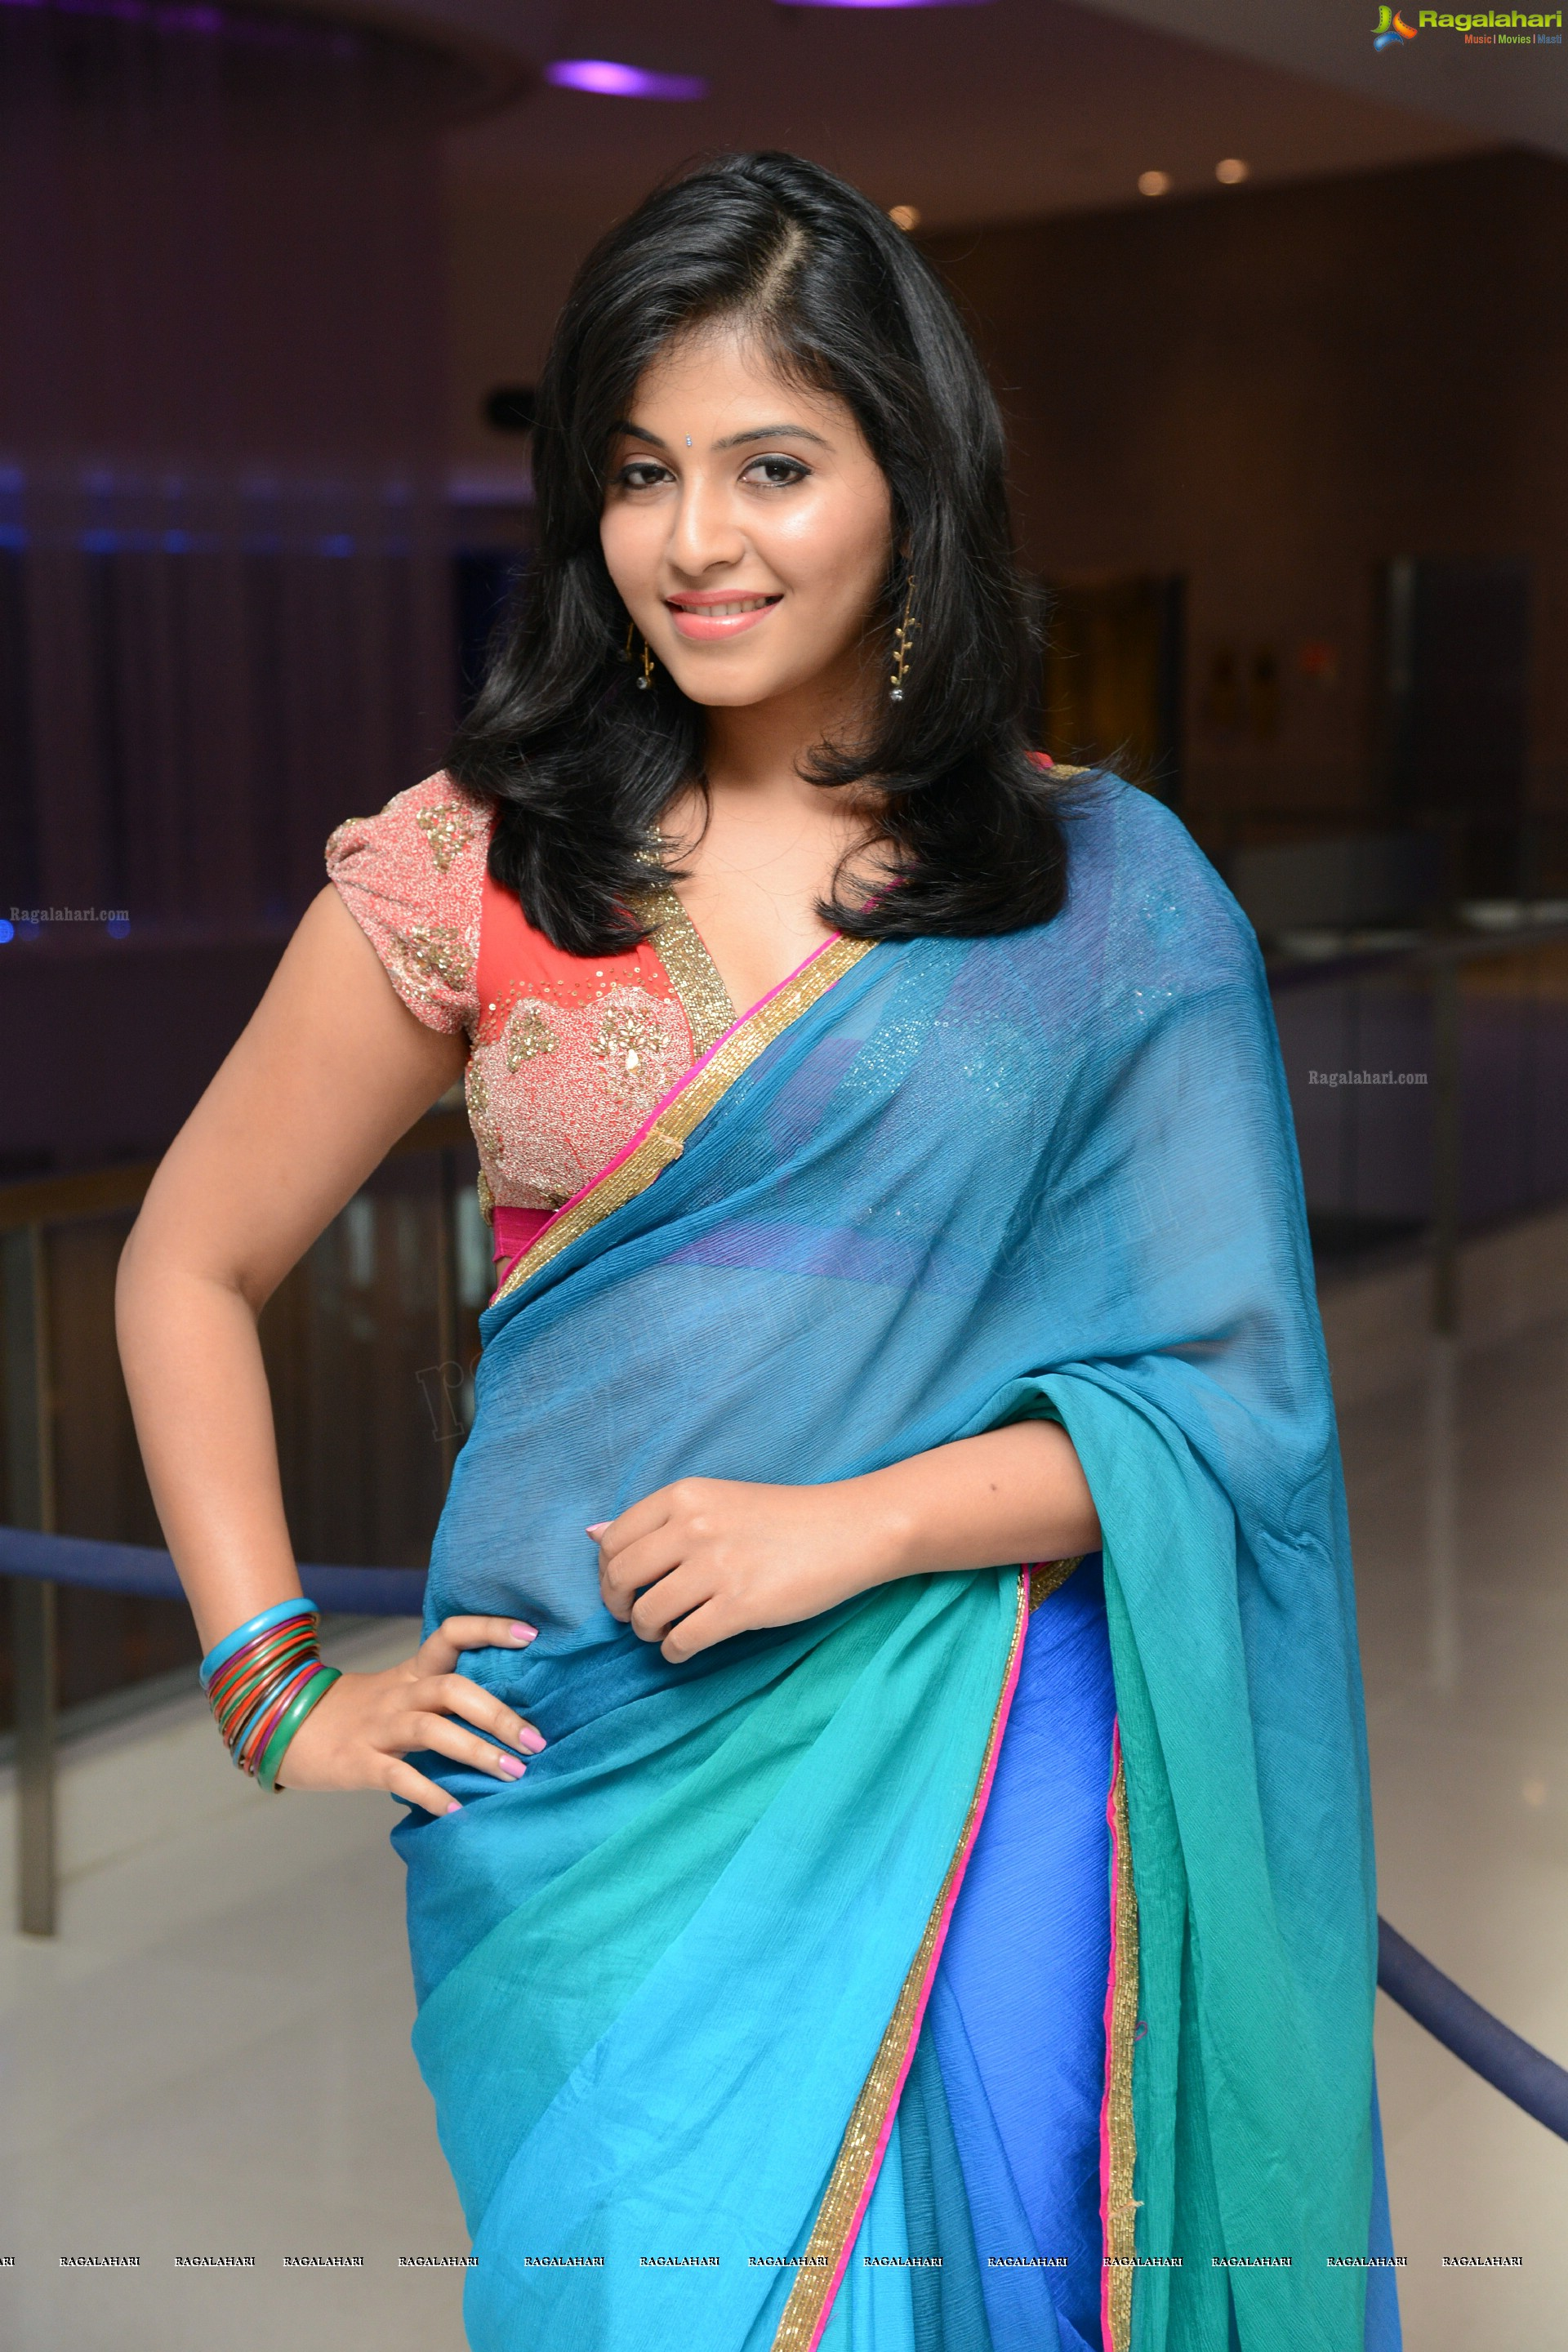 anjali (high definition) image 198 | tollywood heroines photos